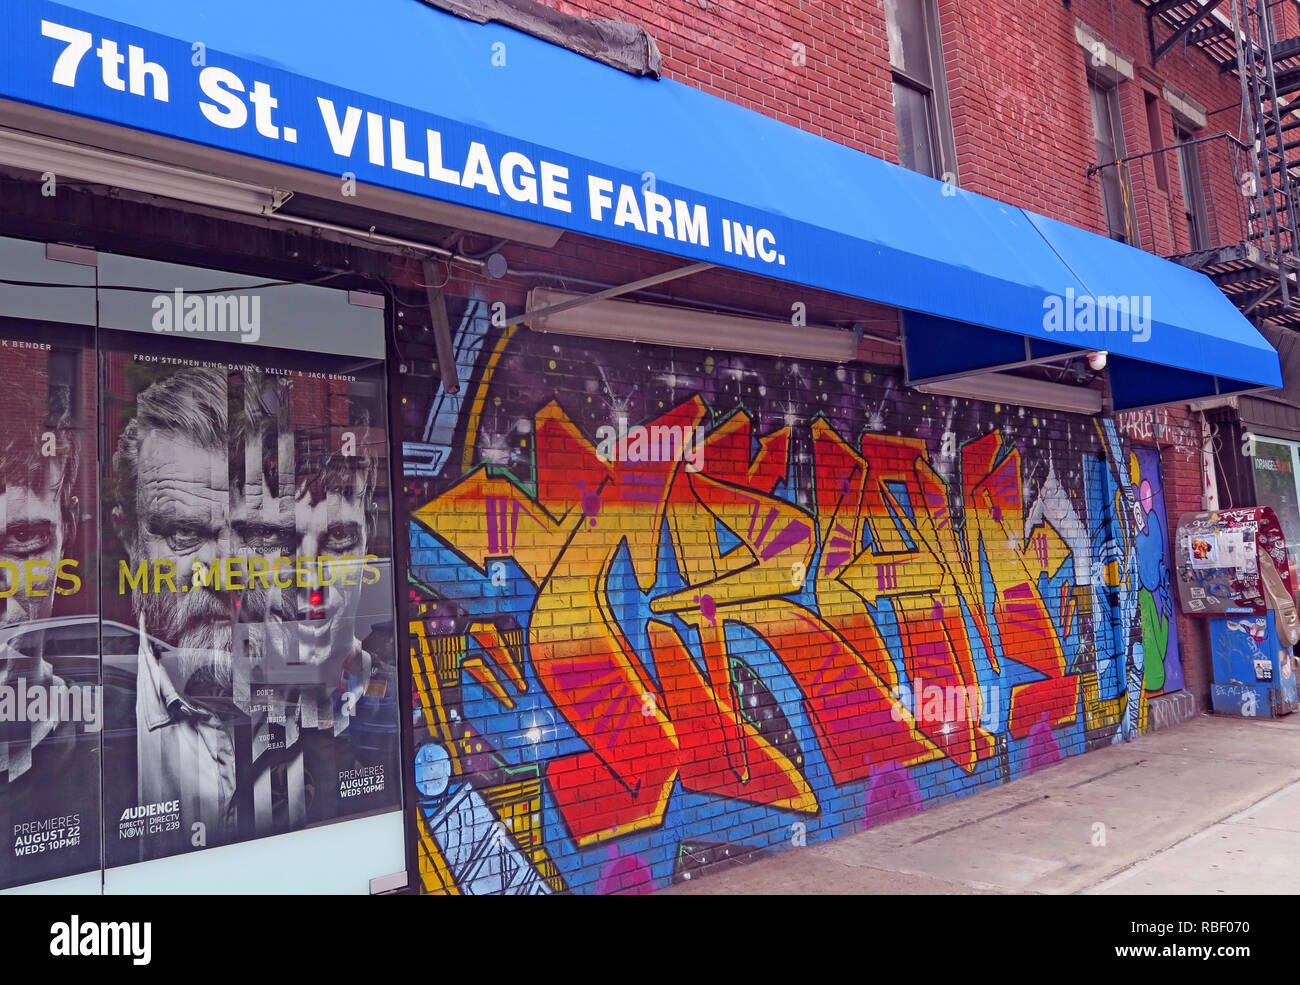 7th St Village Farm inc store, 86, East 7th Street, East Village, Manhattan, New York, NY, USA - Stock Image